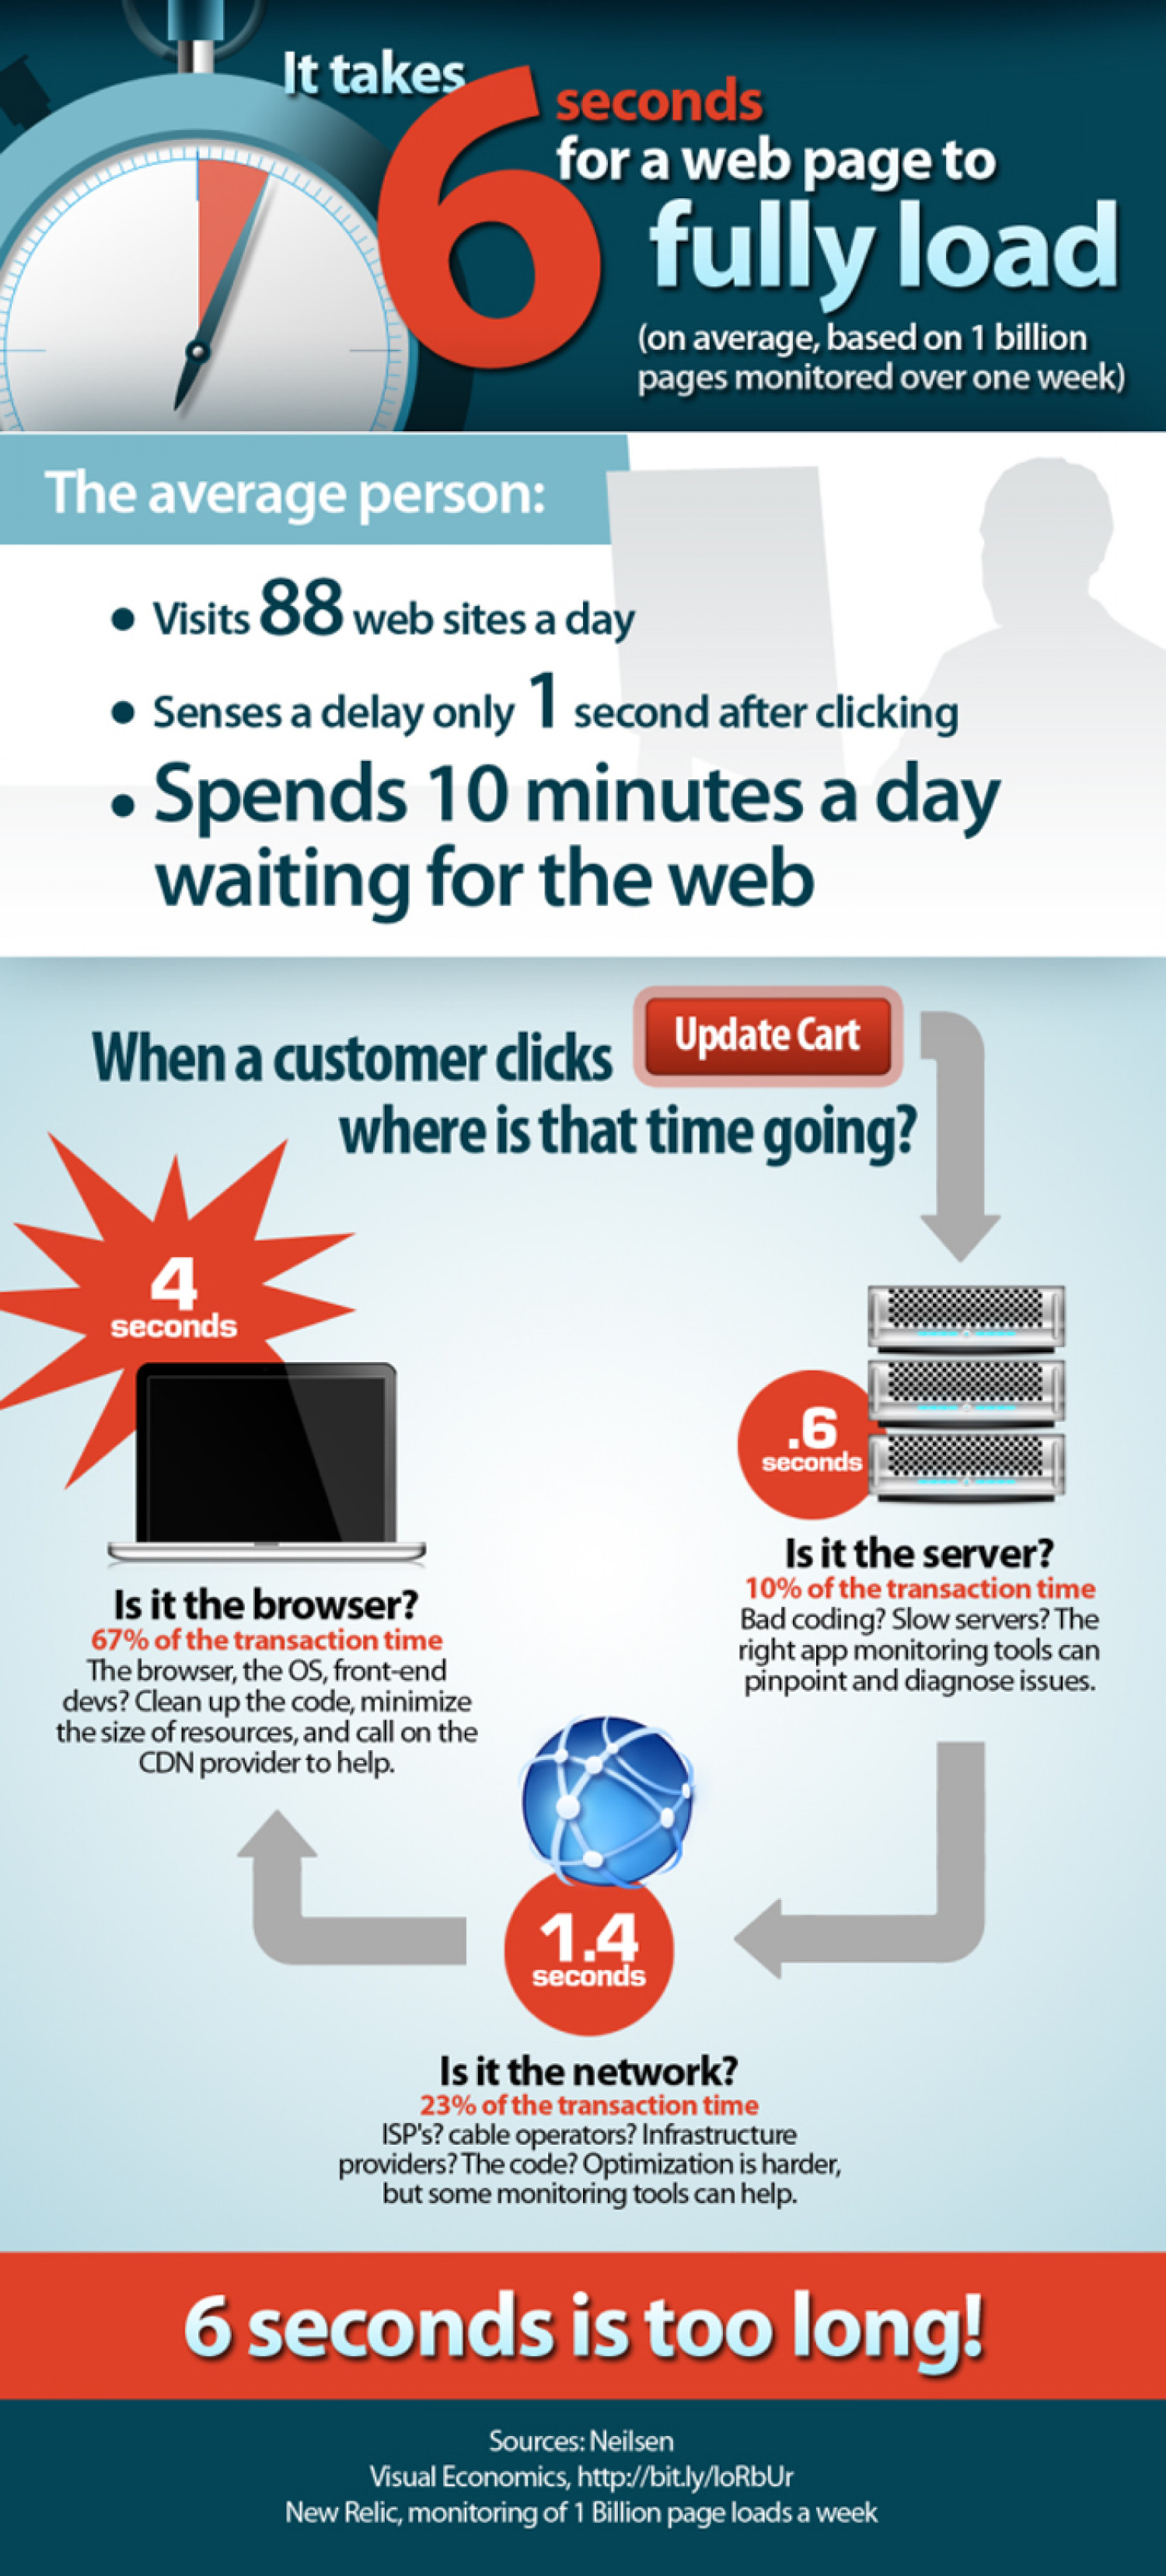 It Takes 6 Seconds for a Web Page to Fully Load Infographic